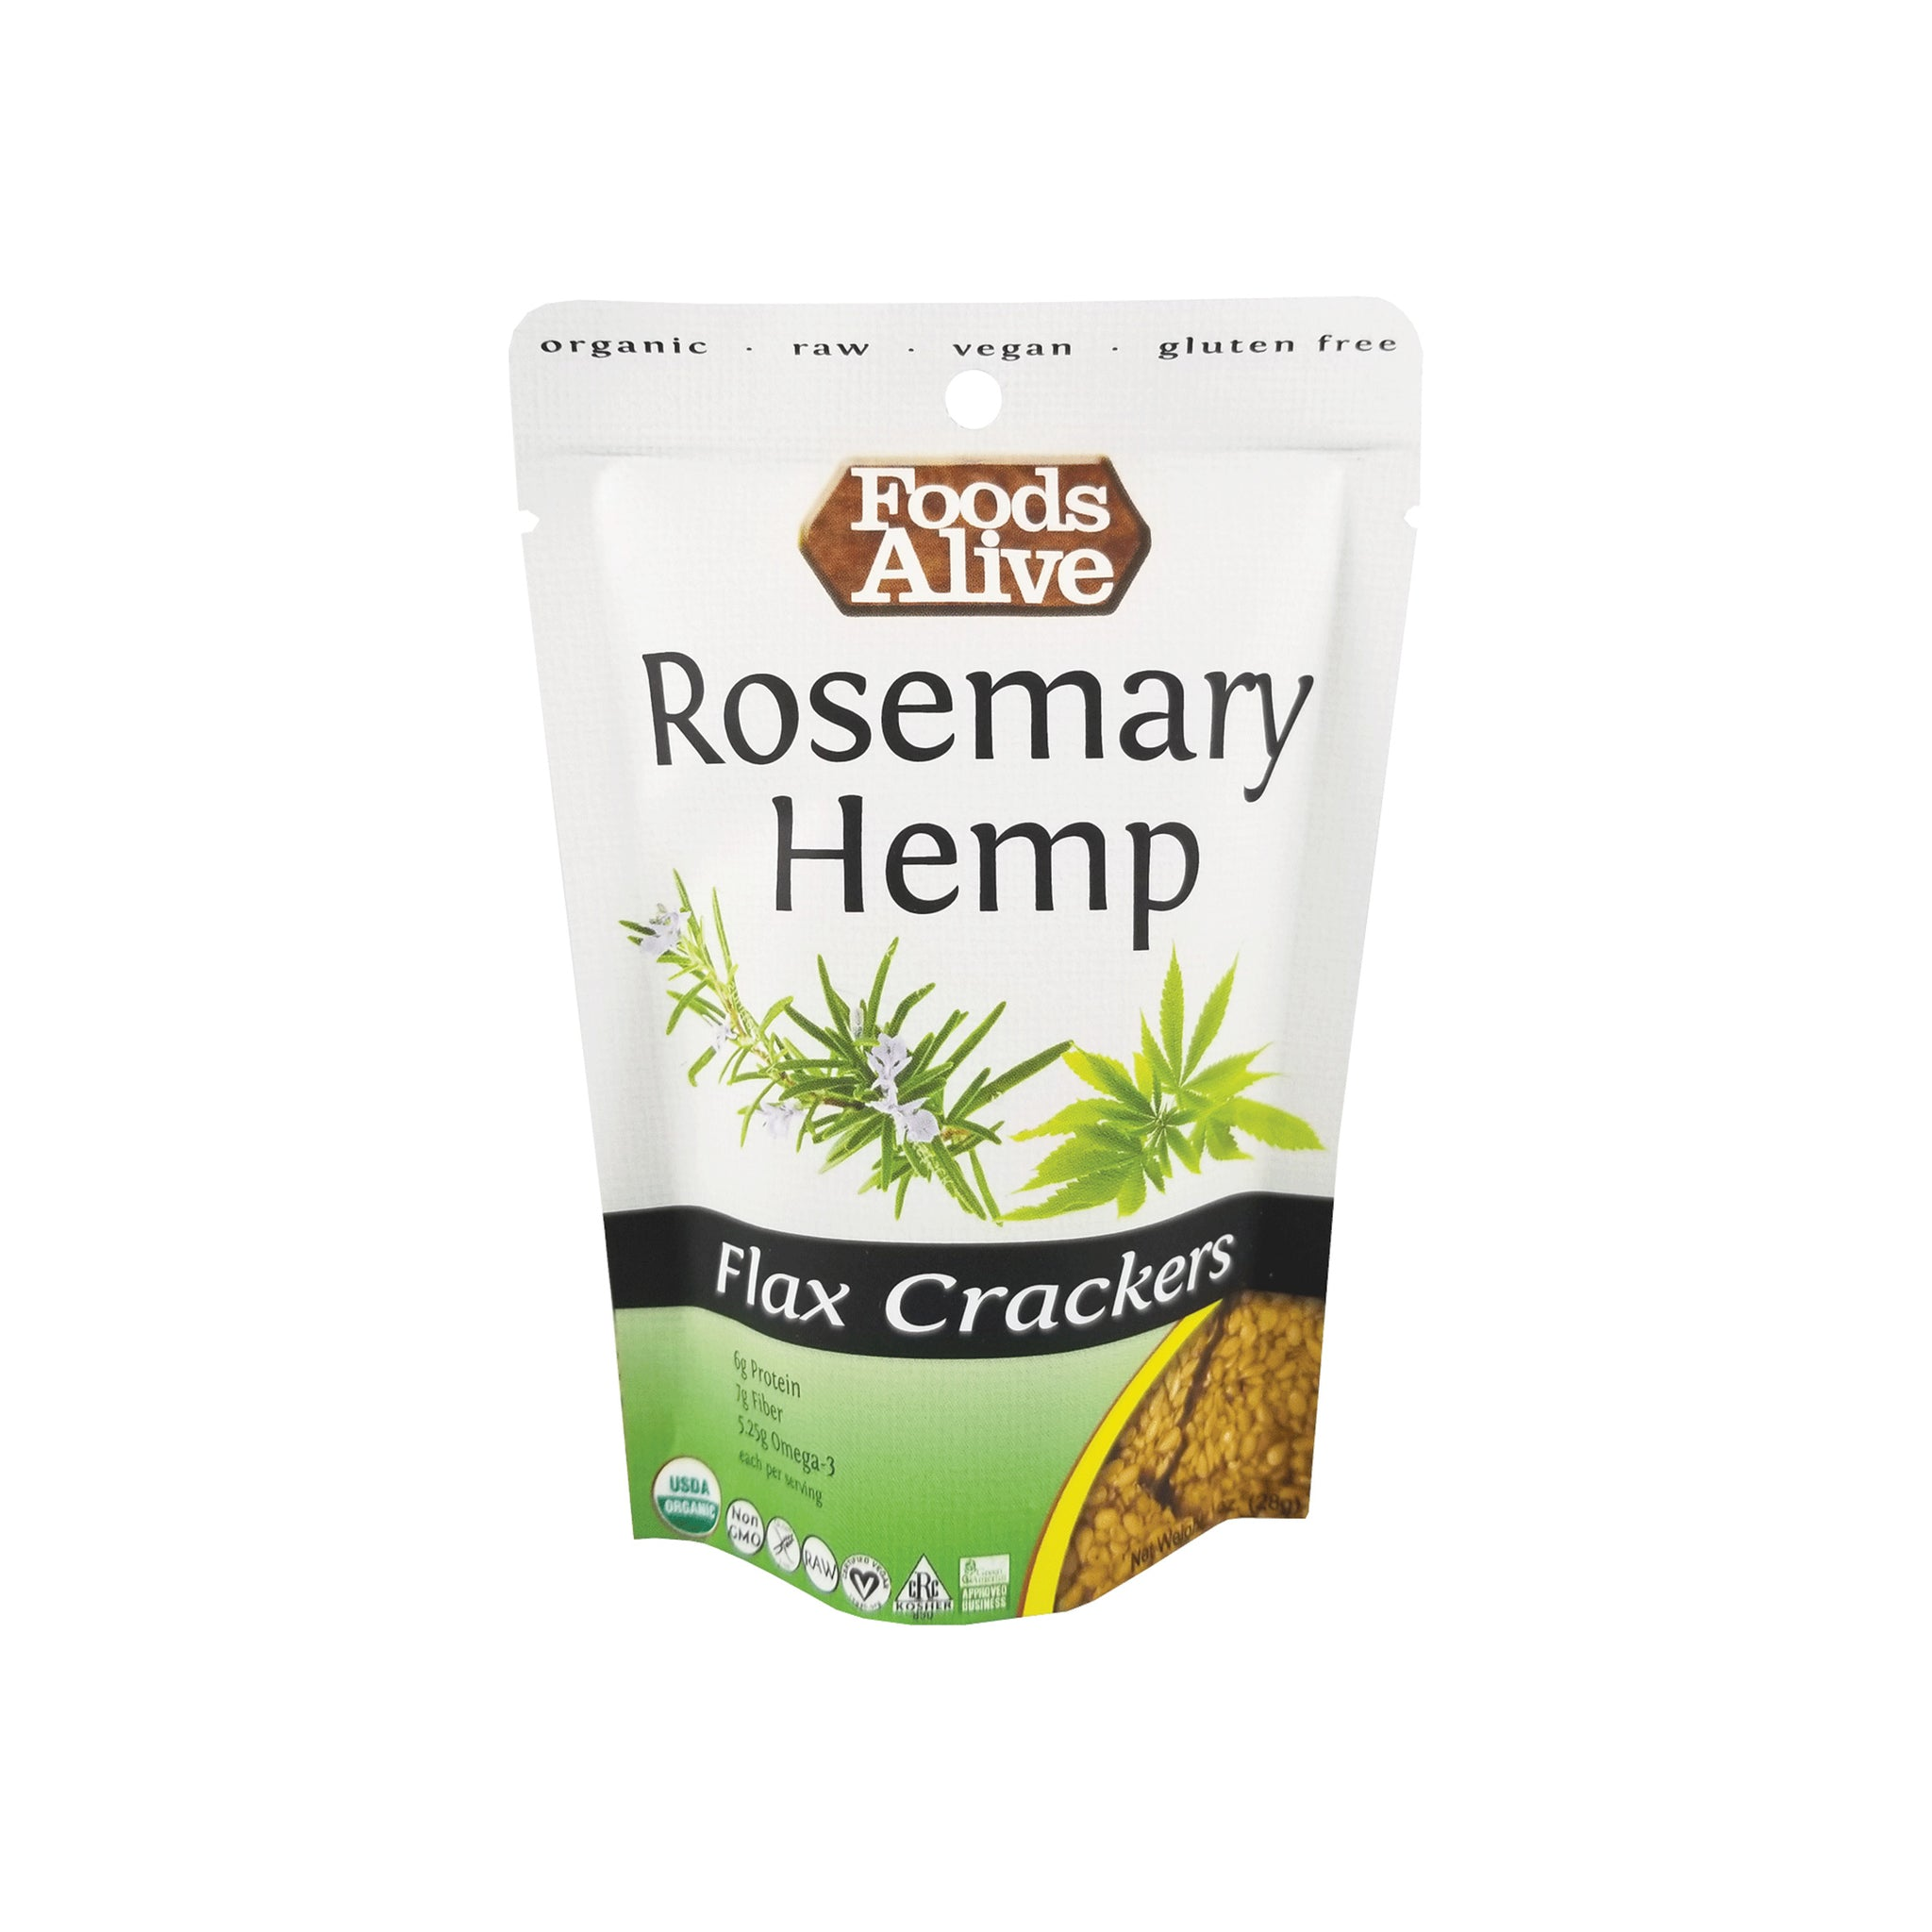 Foods Alive - Organic Flax Crackers - Hemp - 1 oz - Front